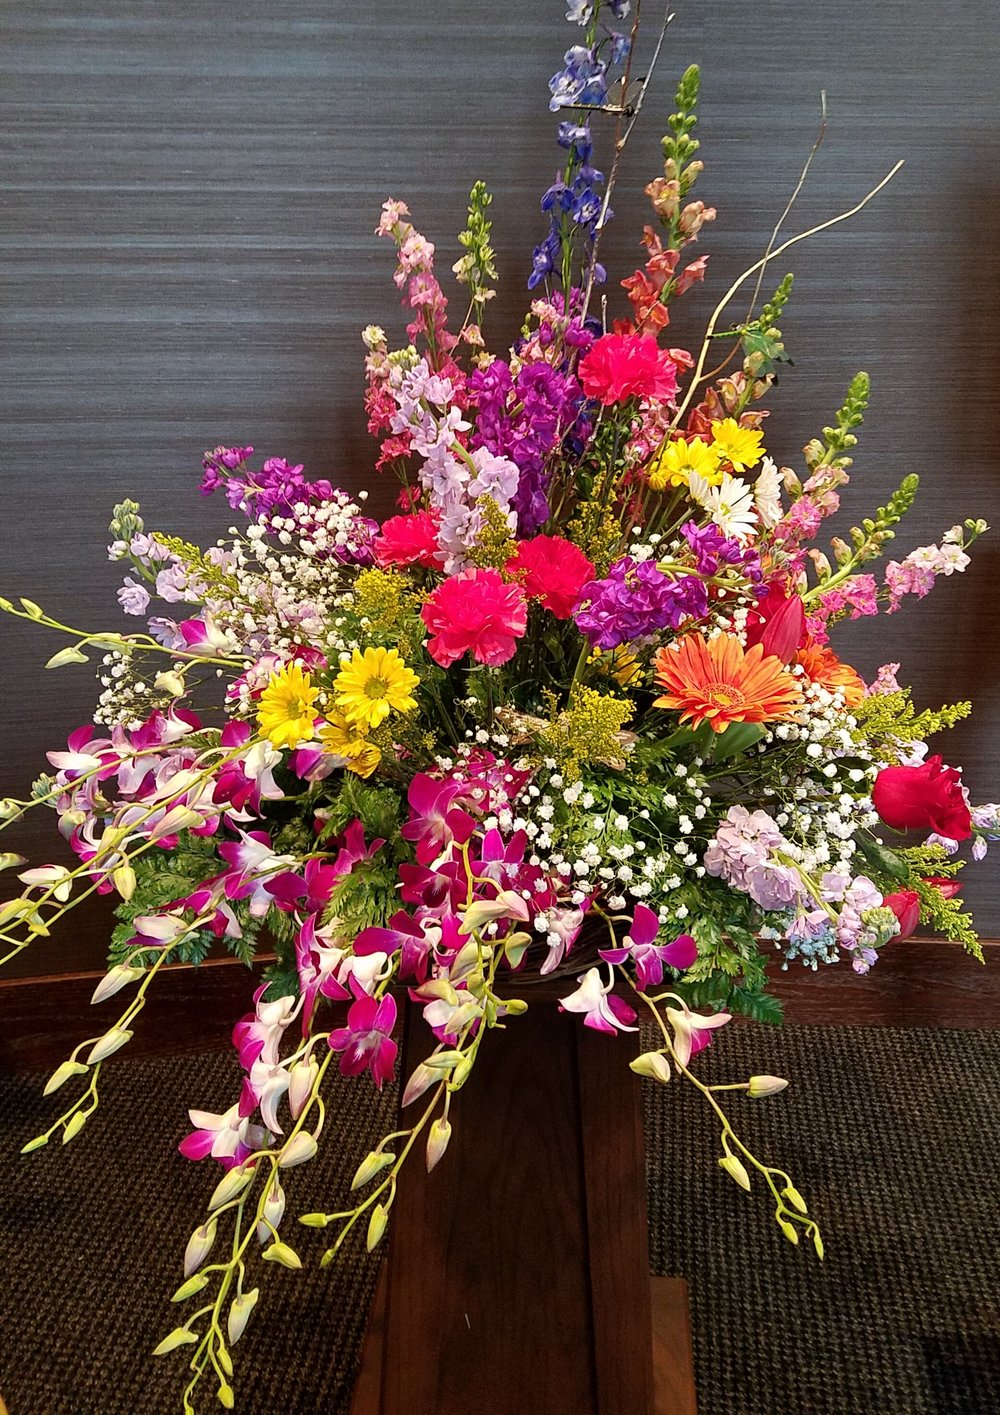 Multicolored funeral flowers